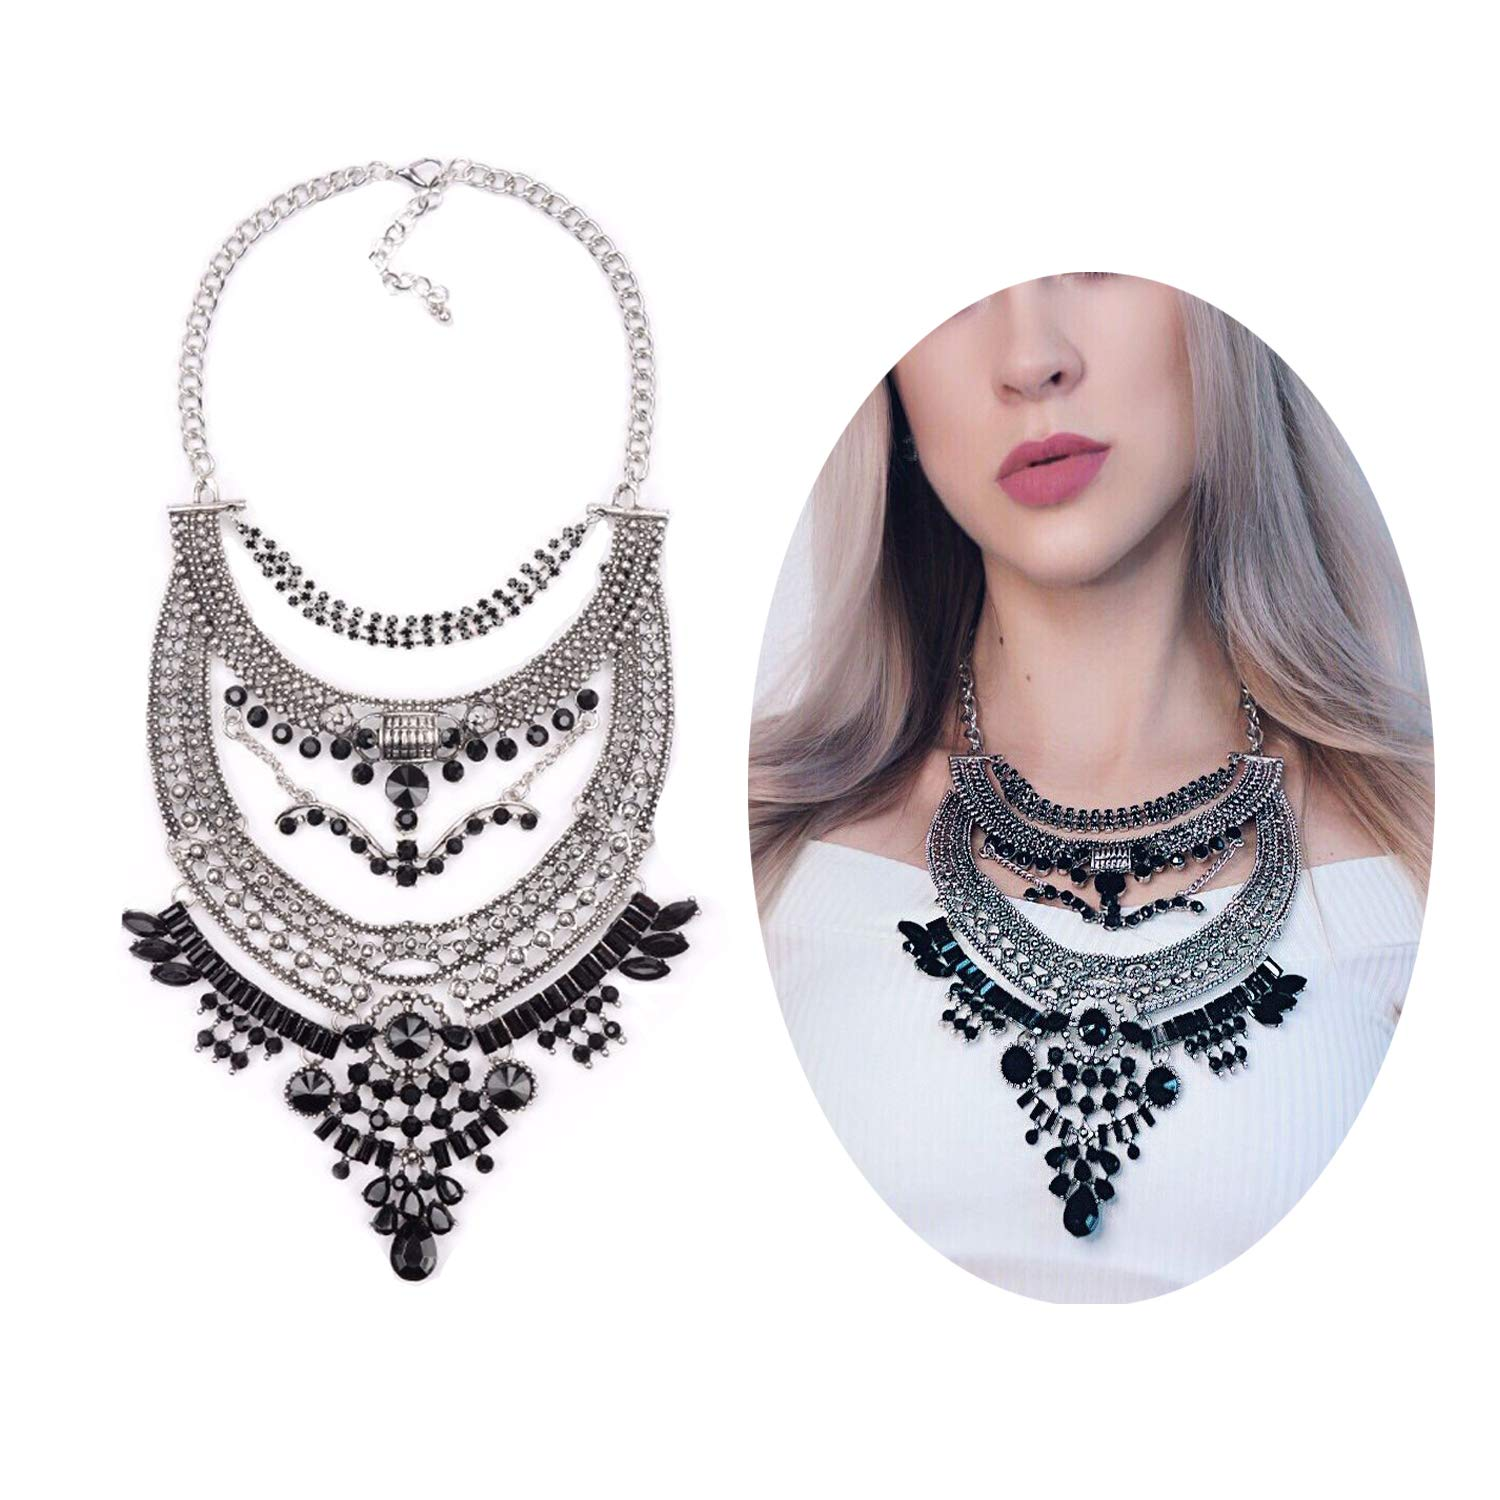 KissYan Statement Necklace Glamorous Over The Top Statement Jewelry White and Black Stone Mixed Tone